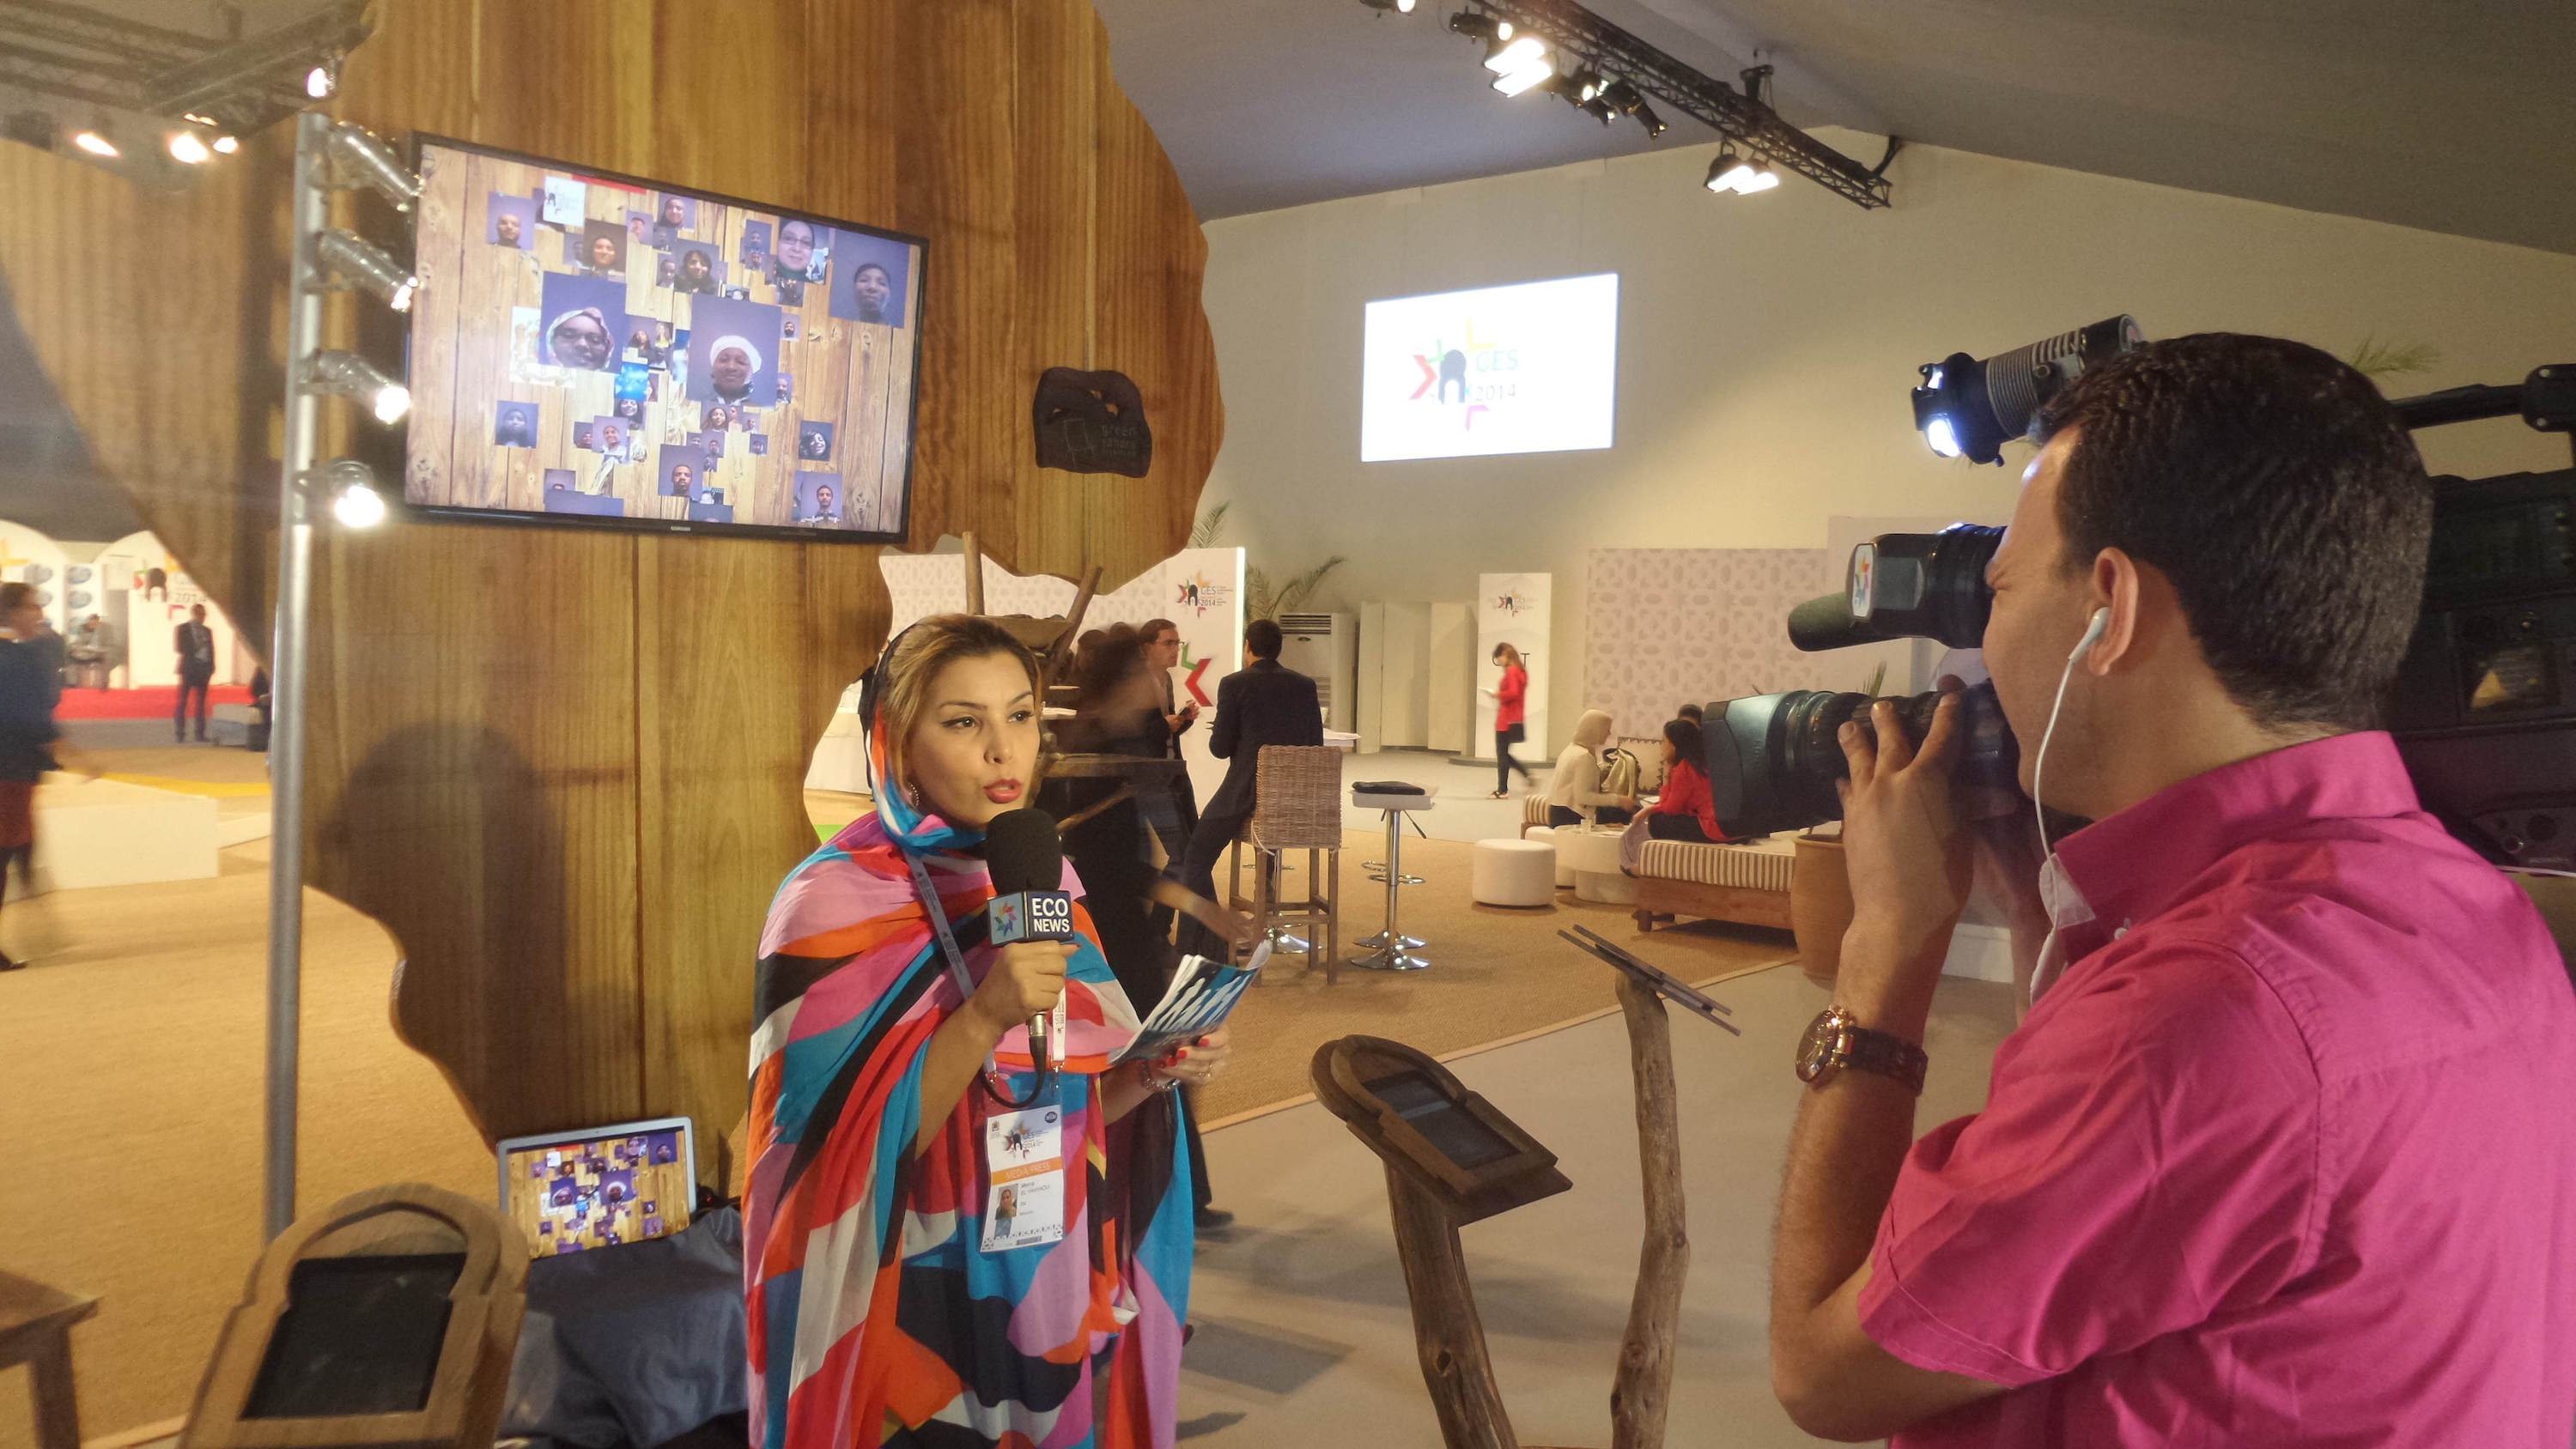 Africa sculpture - GES Marrakech - 2M interview